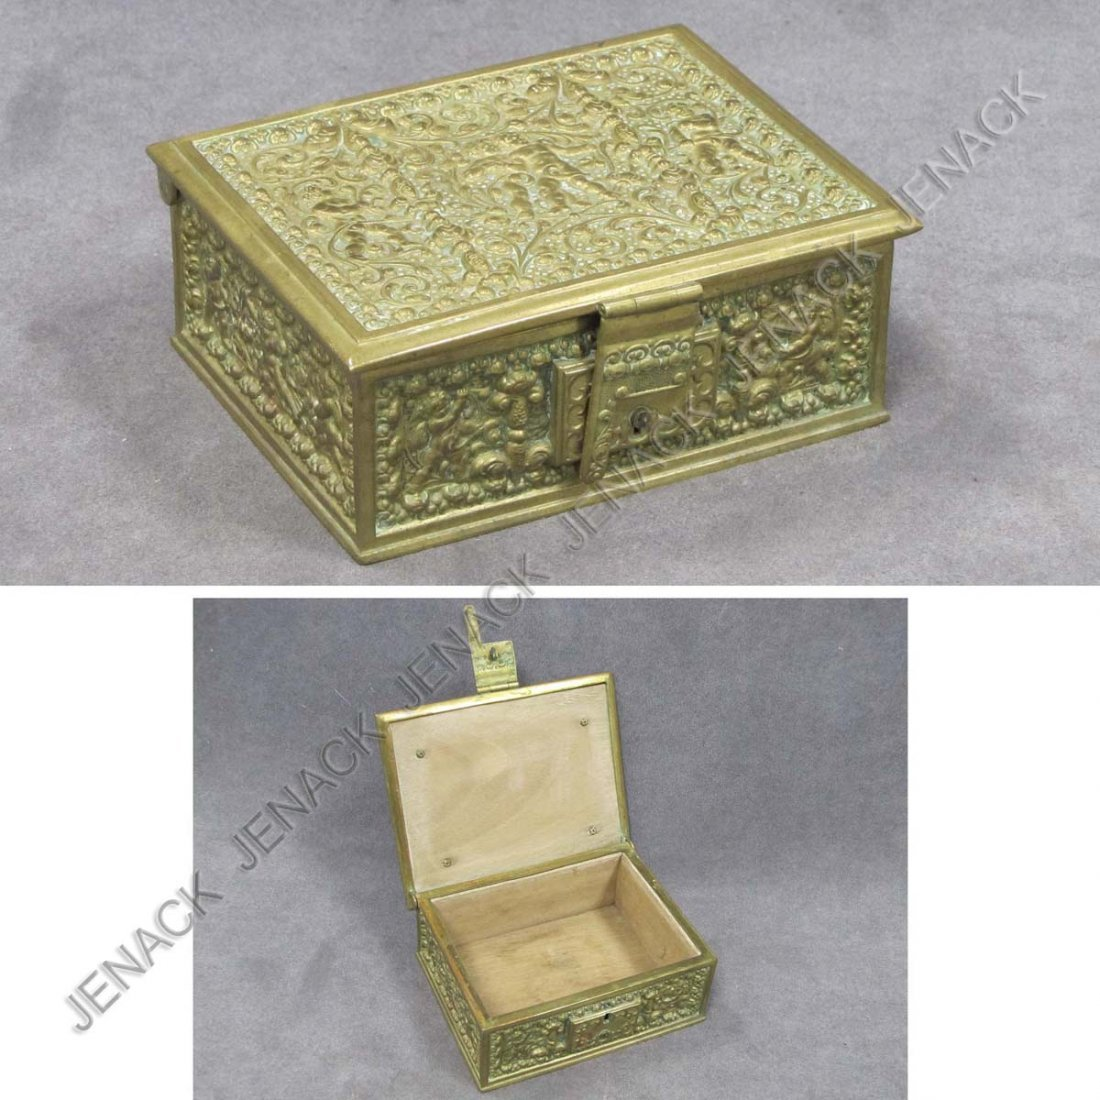 22: RENAISSANCE REVIVAL BRASS COVERED BOX WITH LOCK